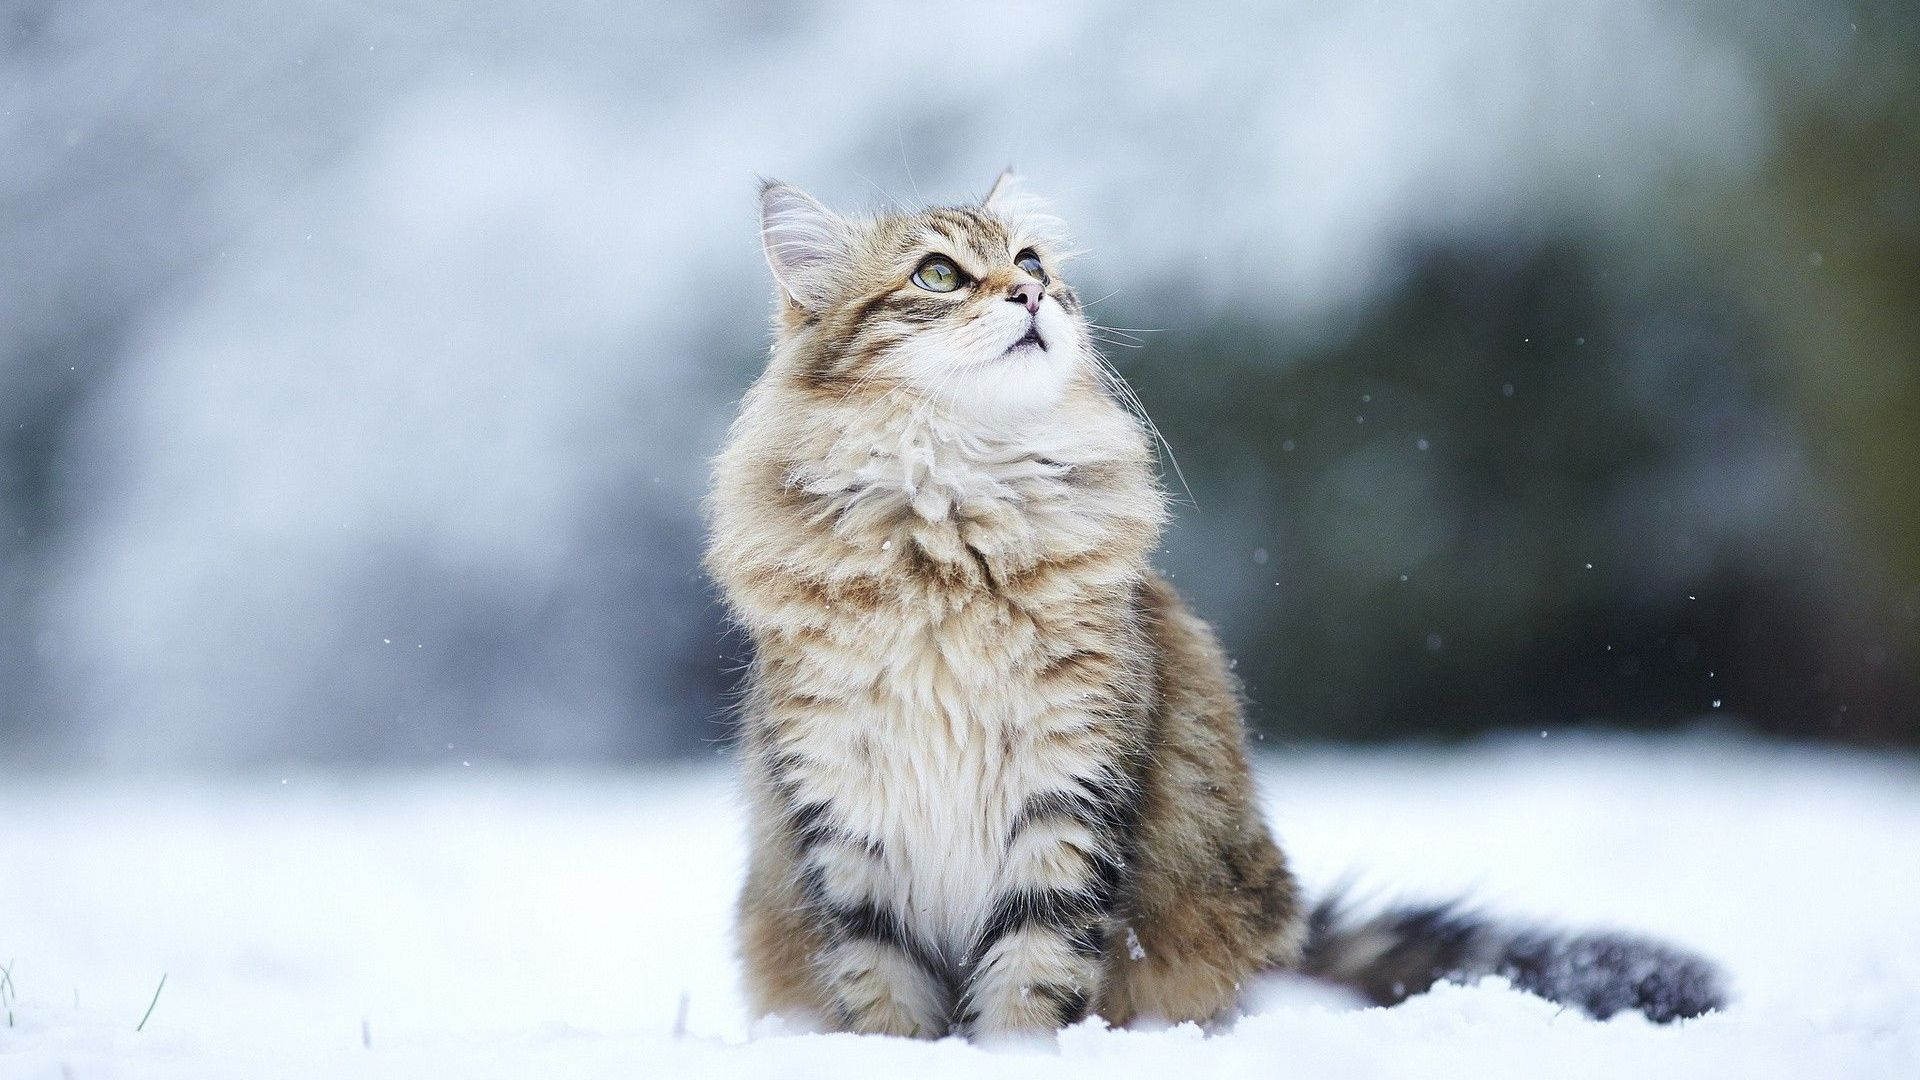 75 Hd Animals Ipad Backgrounds: Cat-winter-hd-wallpaper-taborat-winter-cats